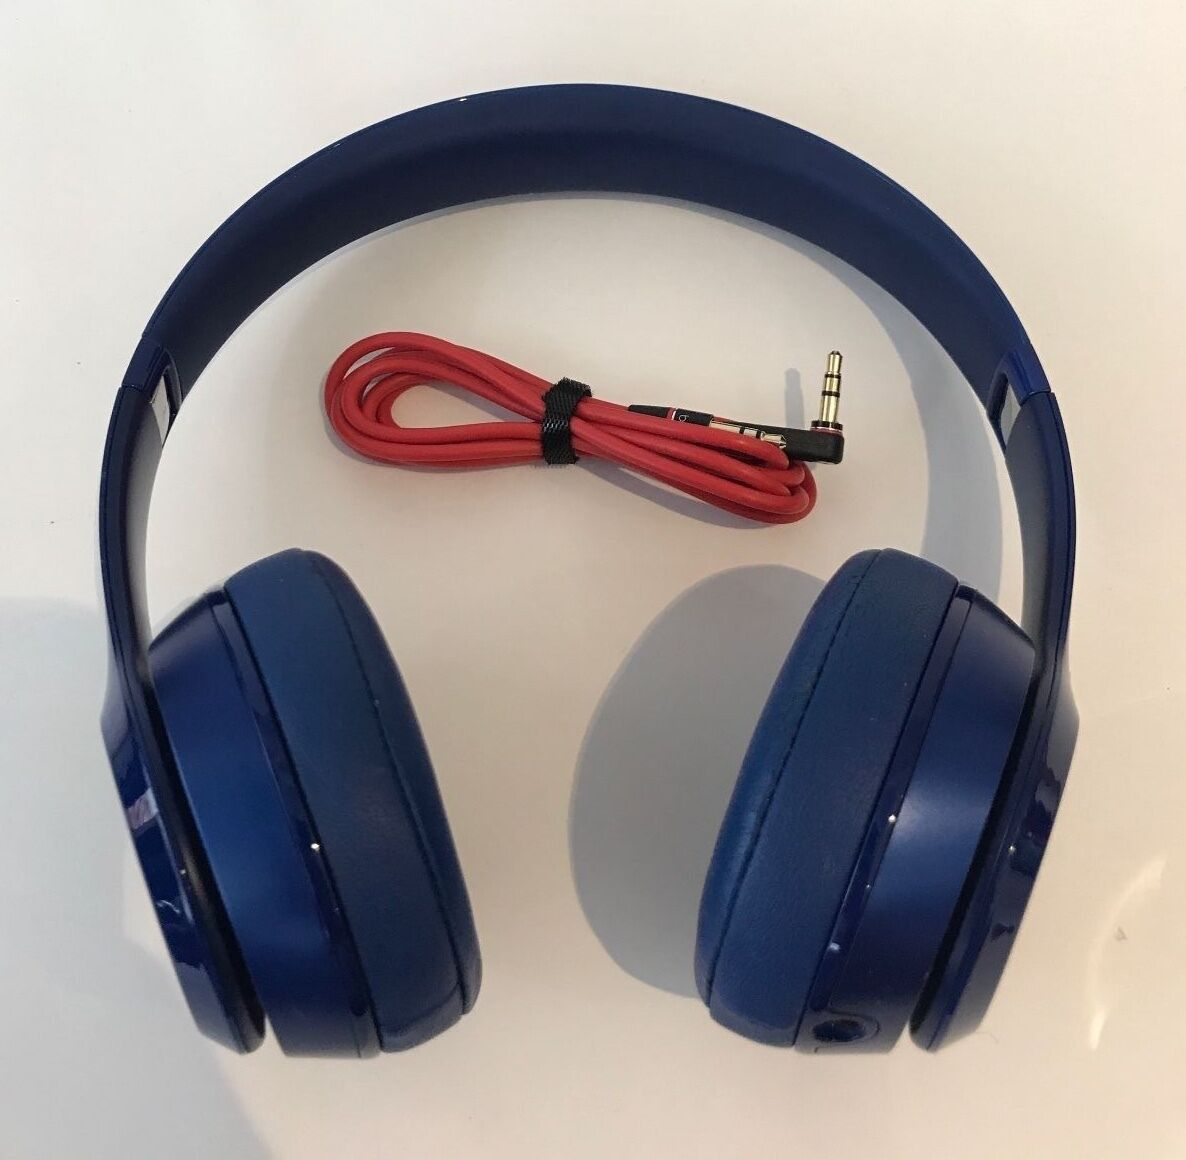 Authentic Beats by Dr. Dre Solo2 Wired Headband Headphones - Good Condition